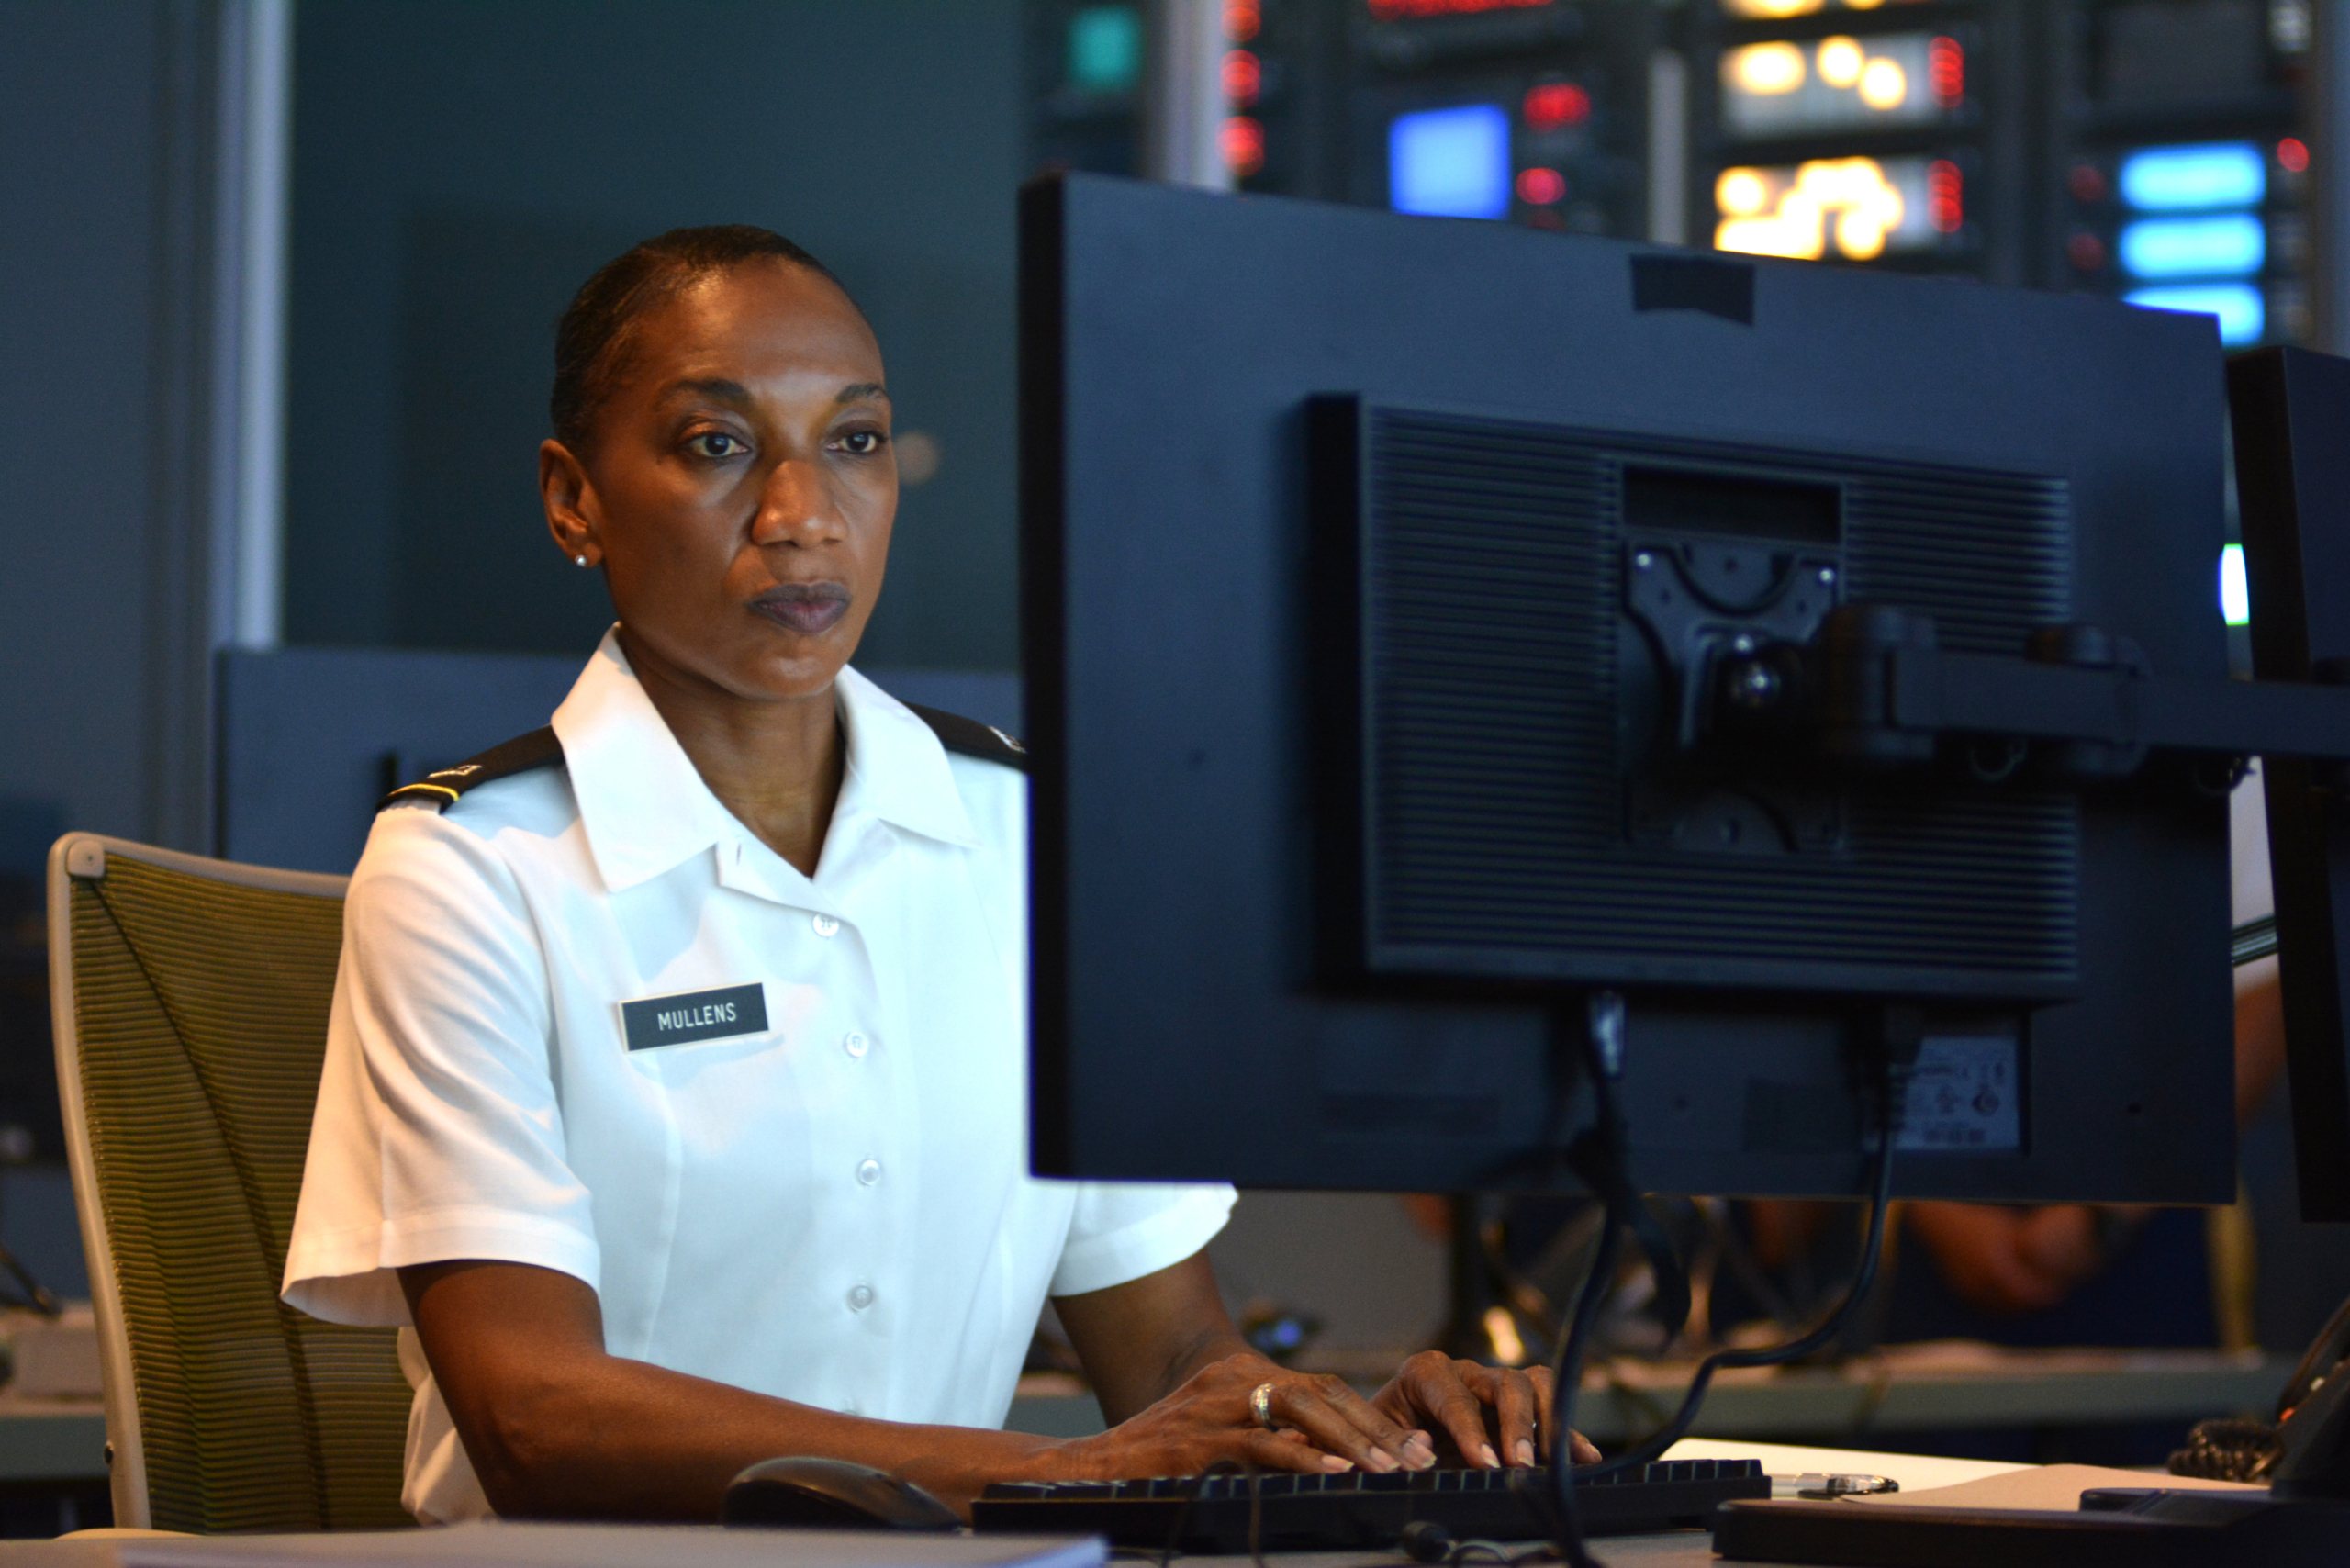 Photo of Chief Warrant Officer 4 Sharon Mullens taken for October 2016 national recruiting advertisement featuring Army cyber Soldiers..